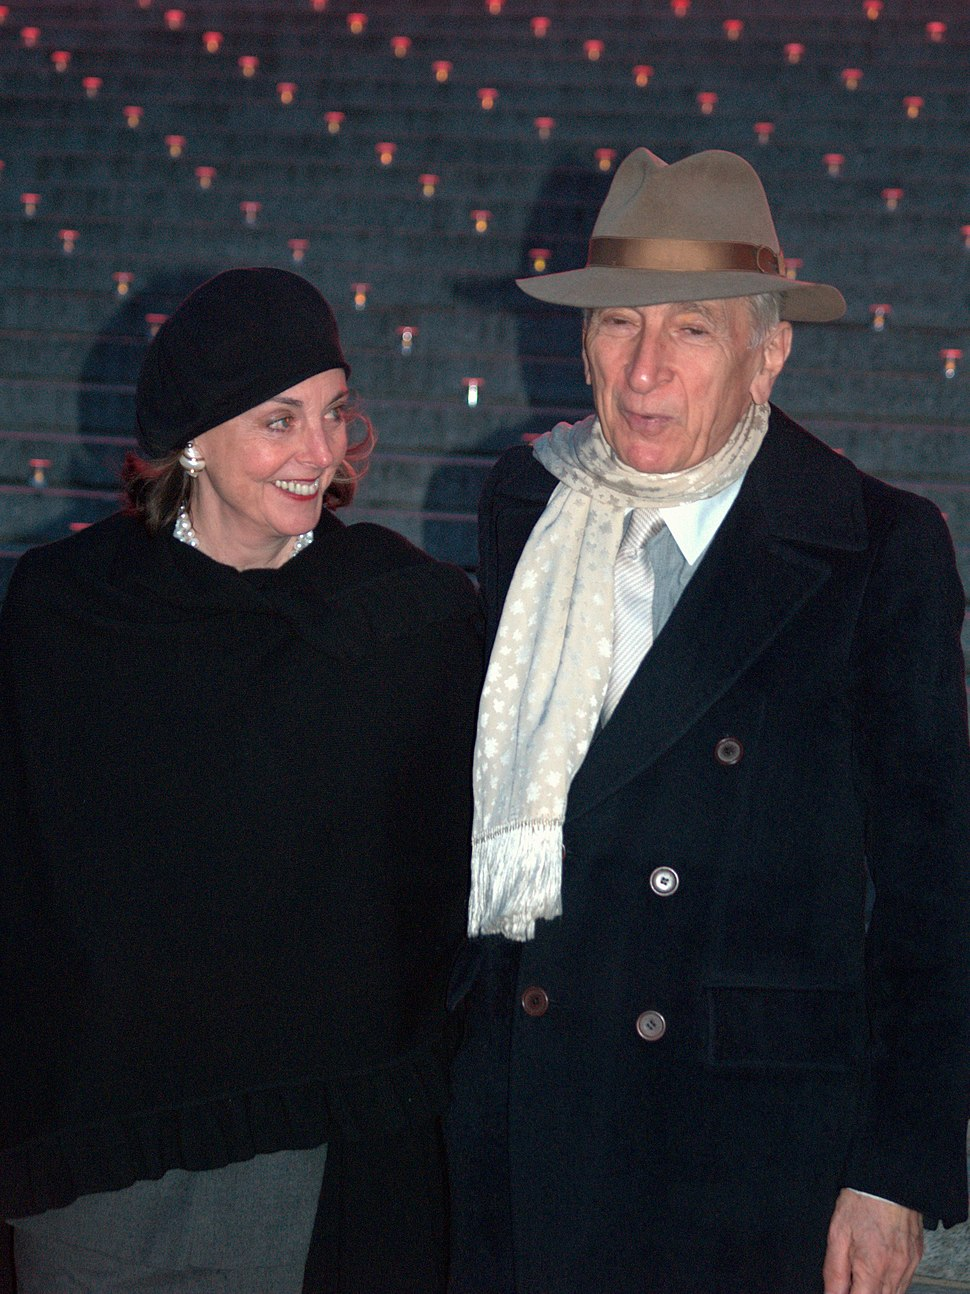 Nan Talese and Gay Talese at the 2009 Tribeca Film Festival